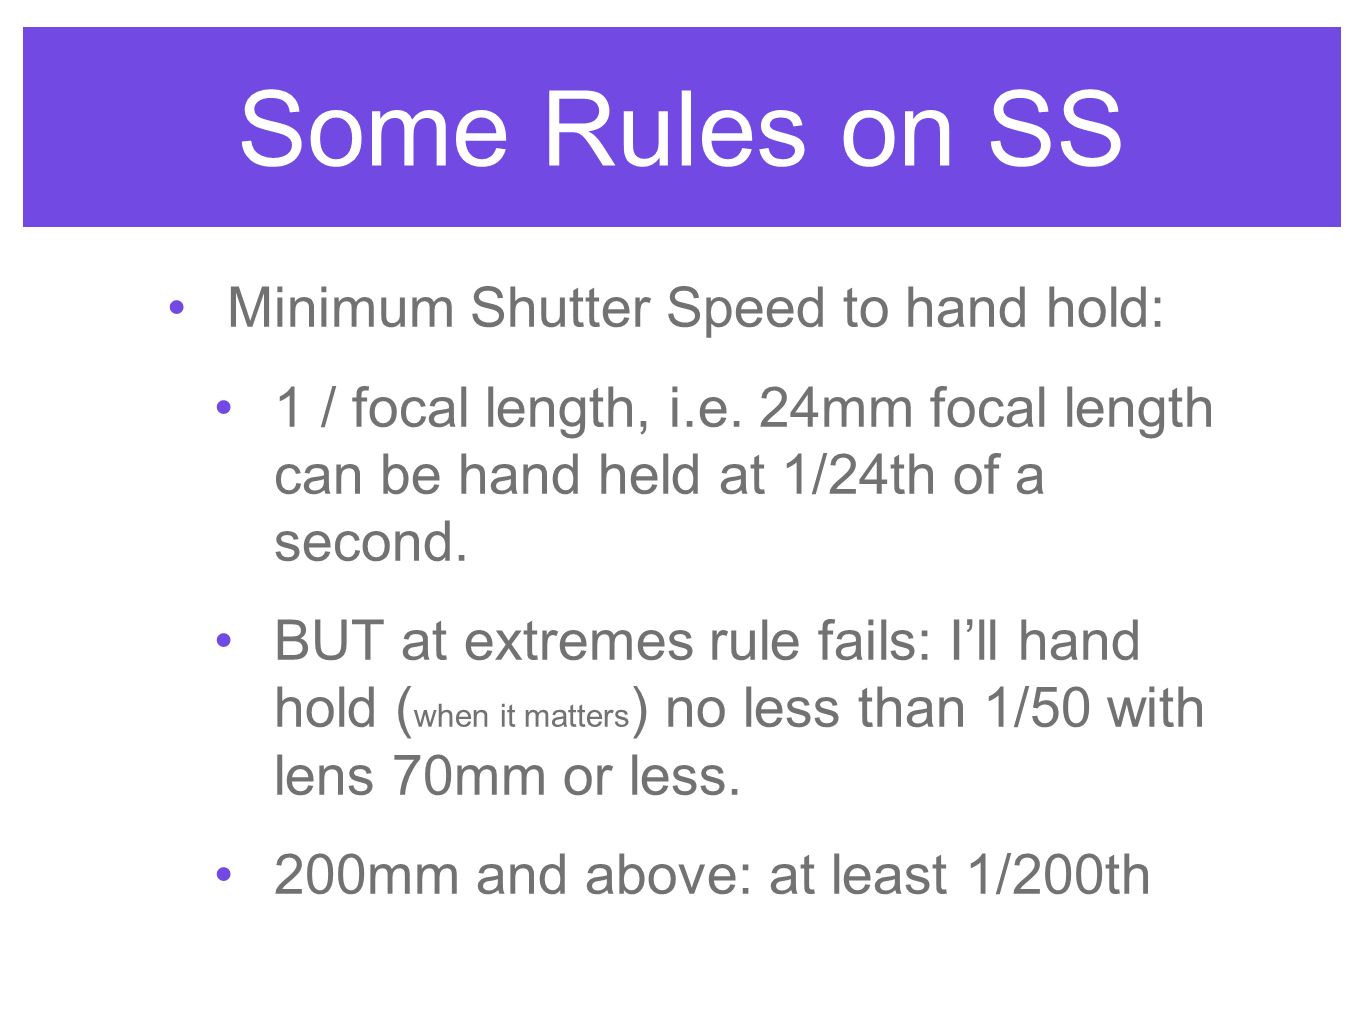 Some Rules on SS Minimum Shutter Speed to hand hold: 1 / focal length, i.e. 24mm focal length can be hand held at 1/24th of a second. BUT at extremes